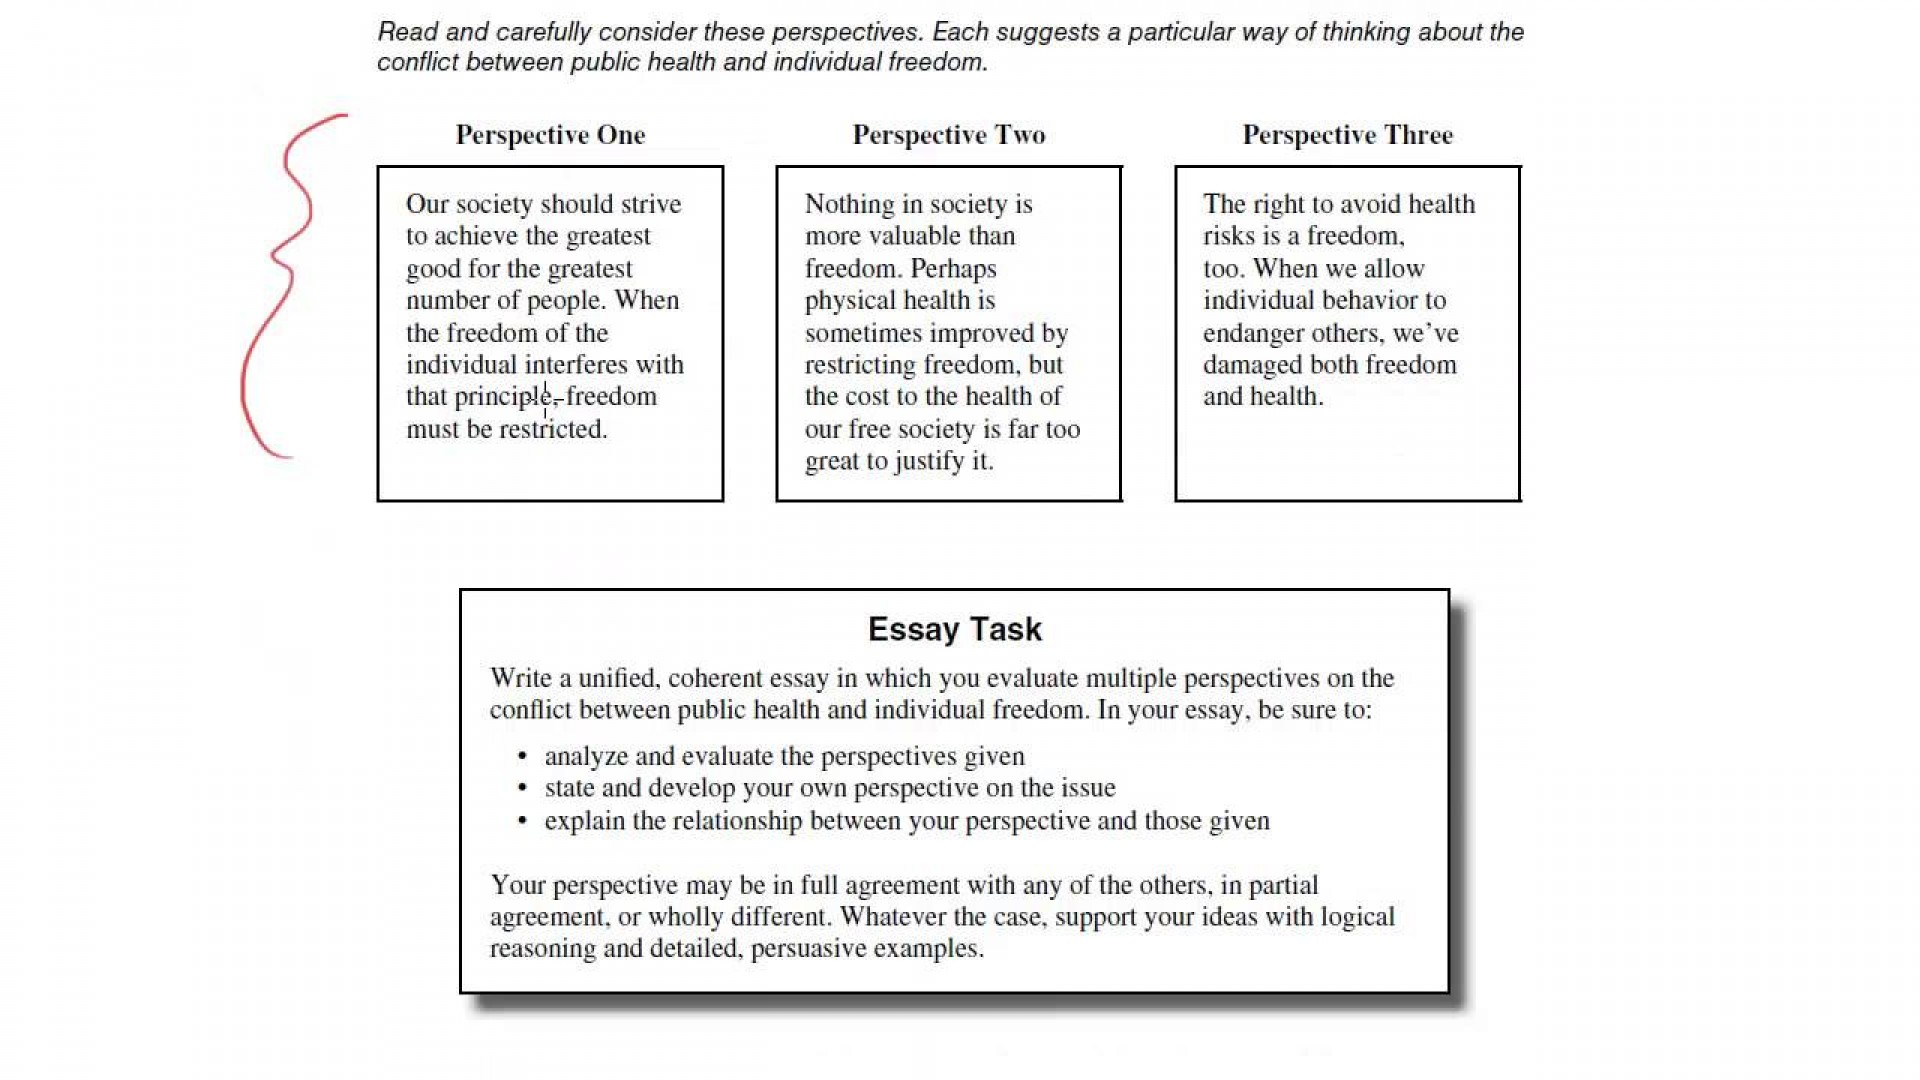 001 essay example public health and individual freedom act examples